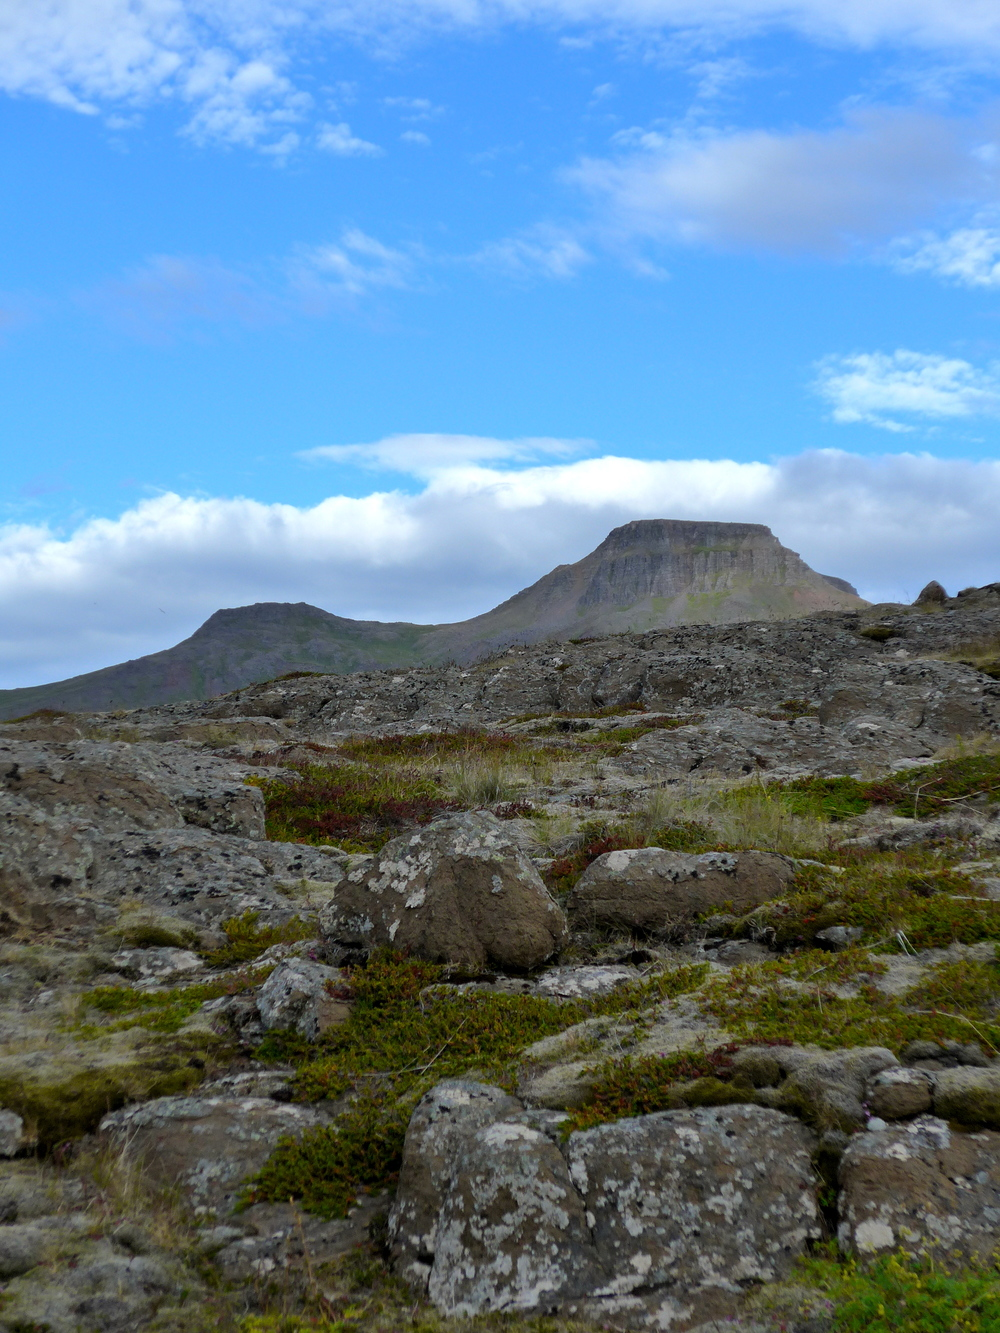 The top of the mountain from our hiking trail.